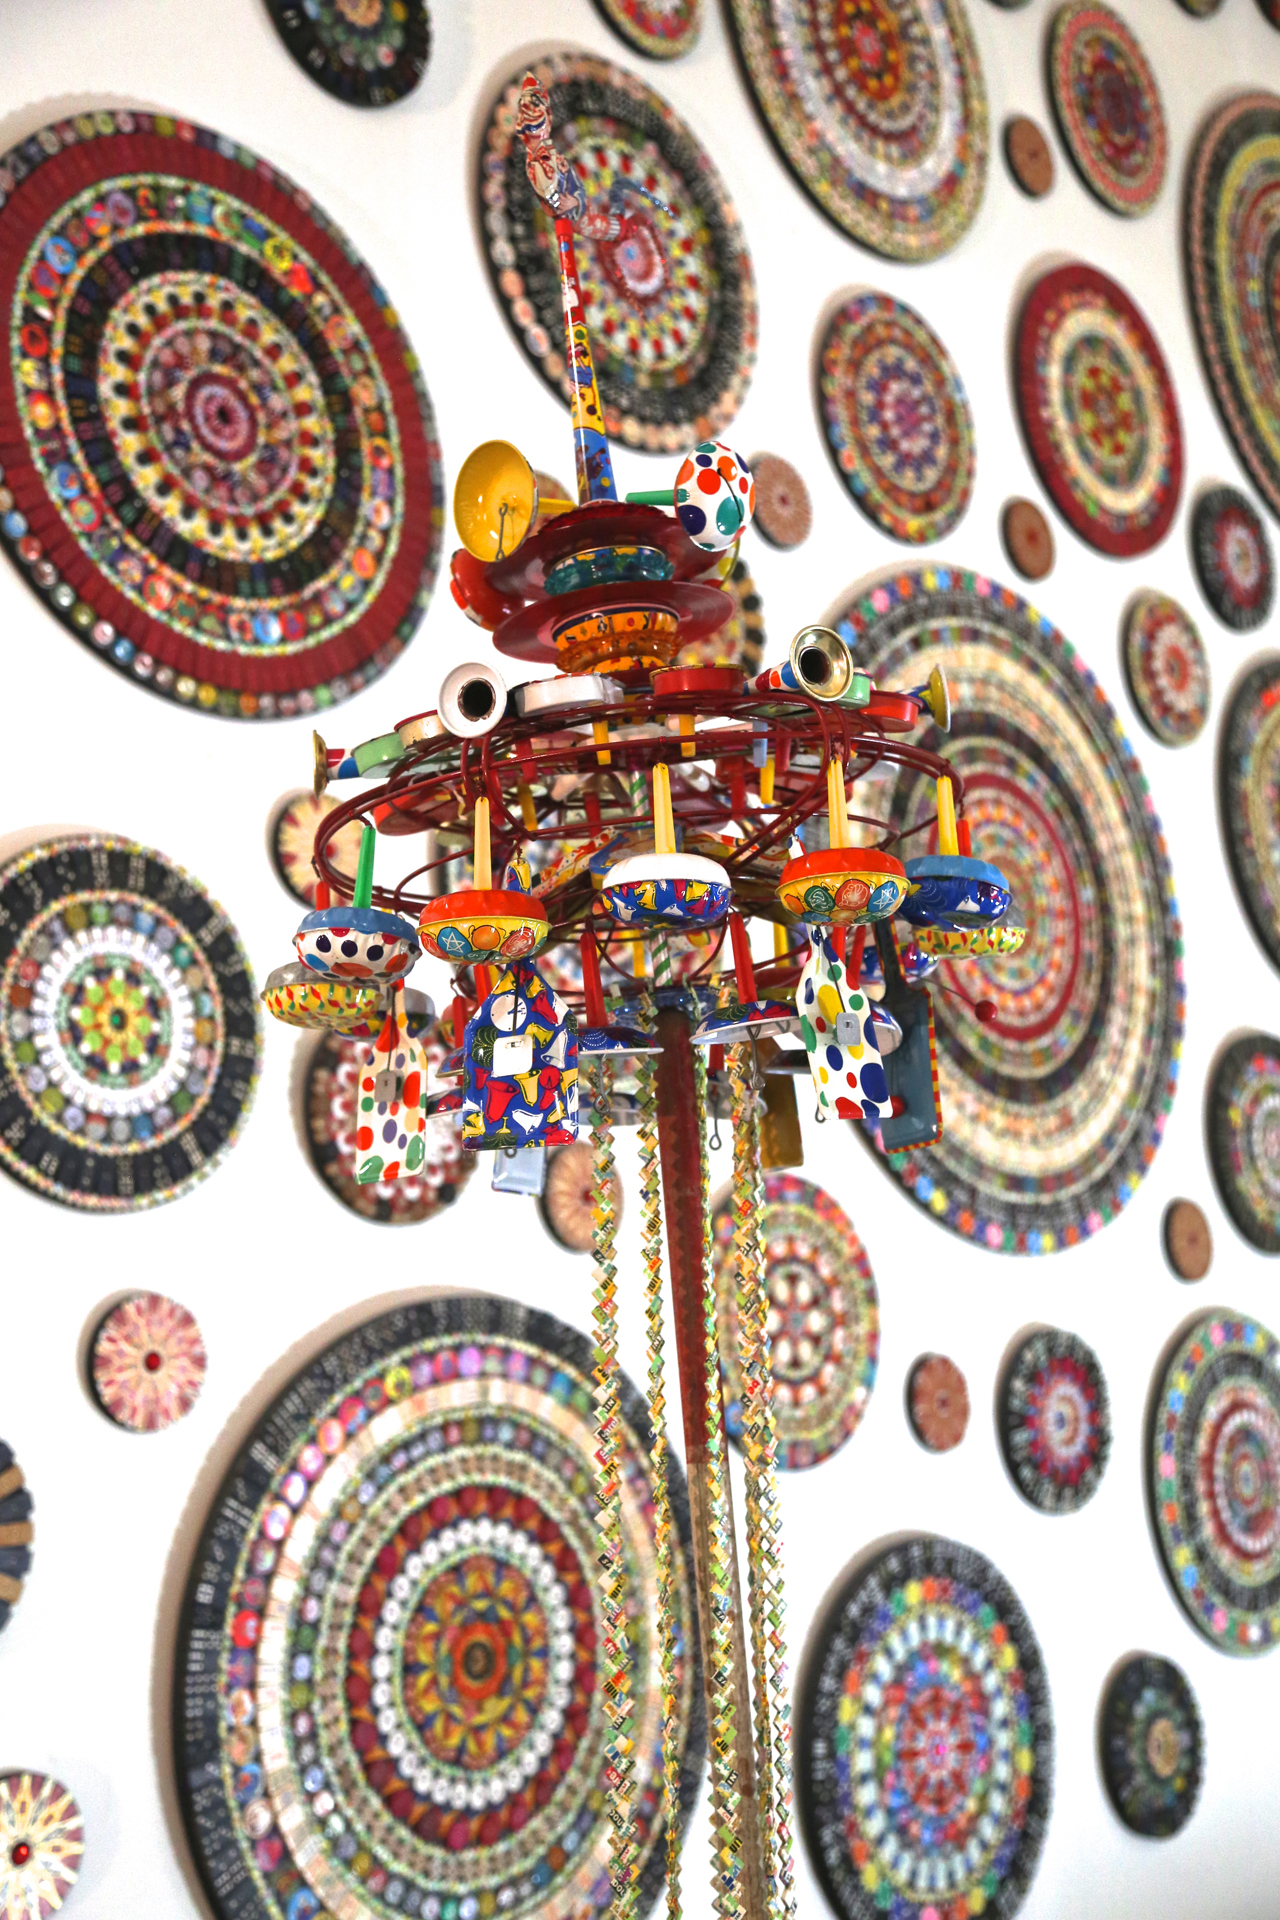 """Detail of John Gutosk, """"The Mandala Project"""" (click to enlarge)"""